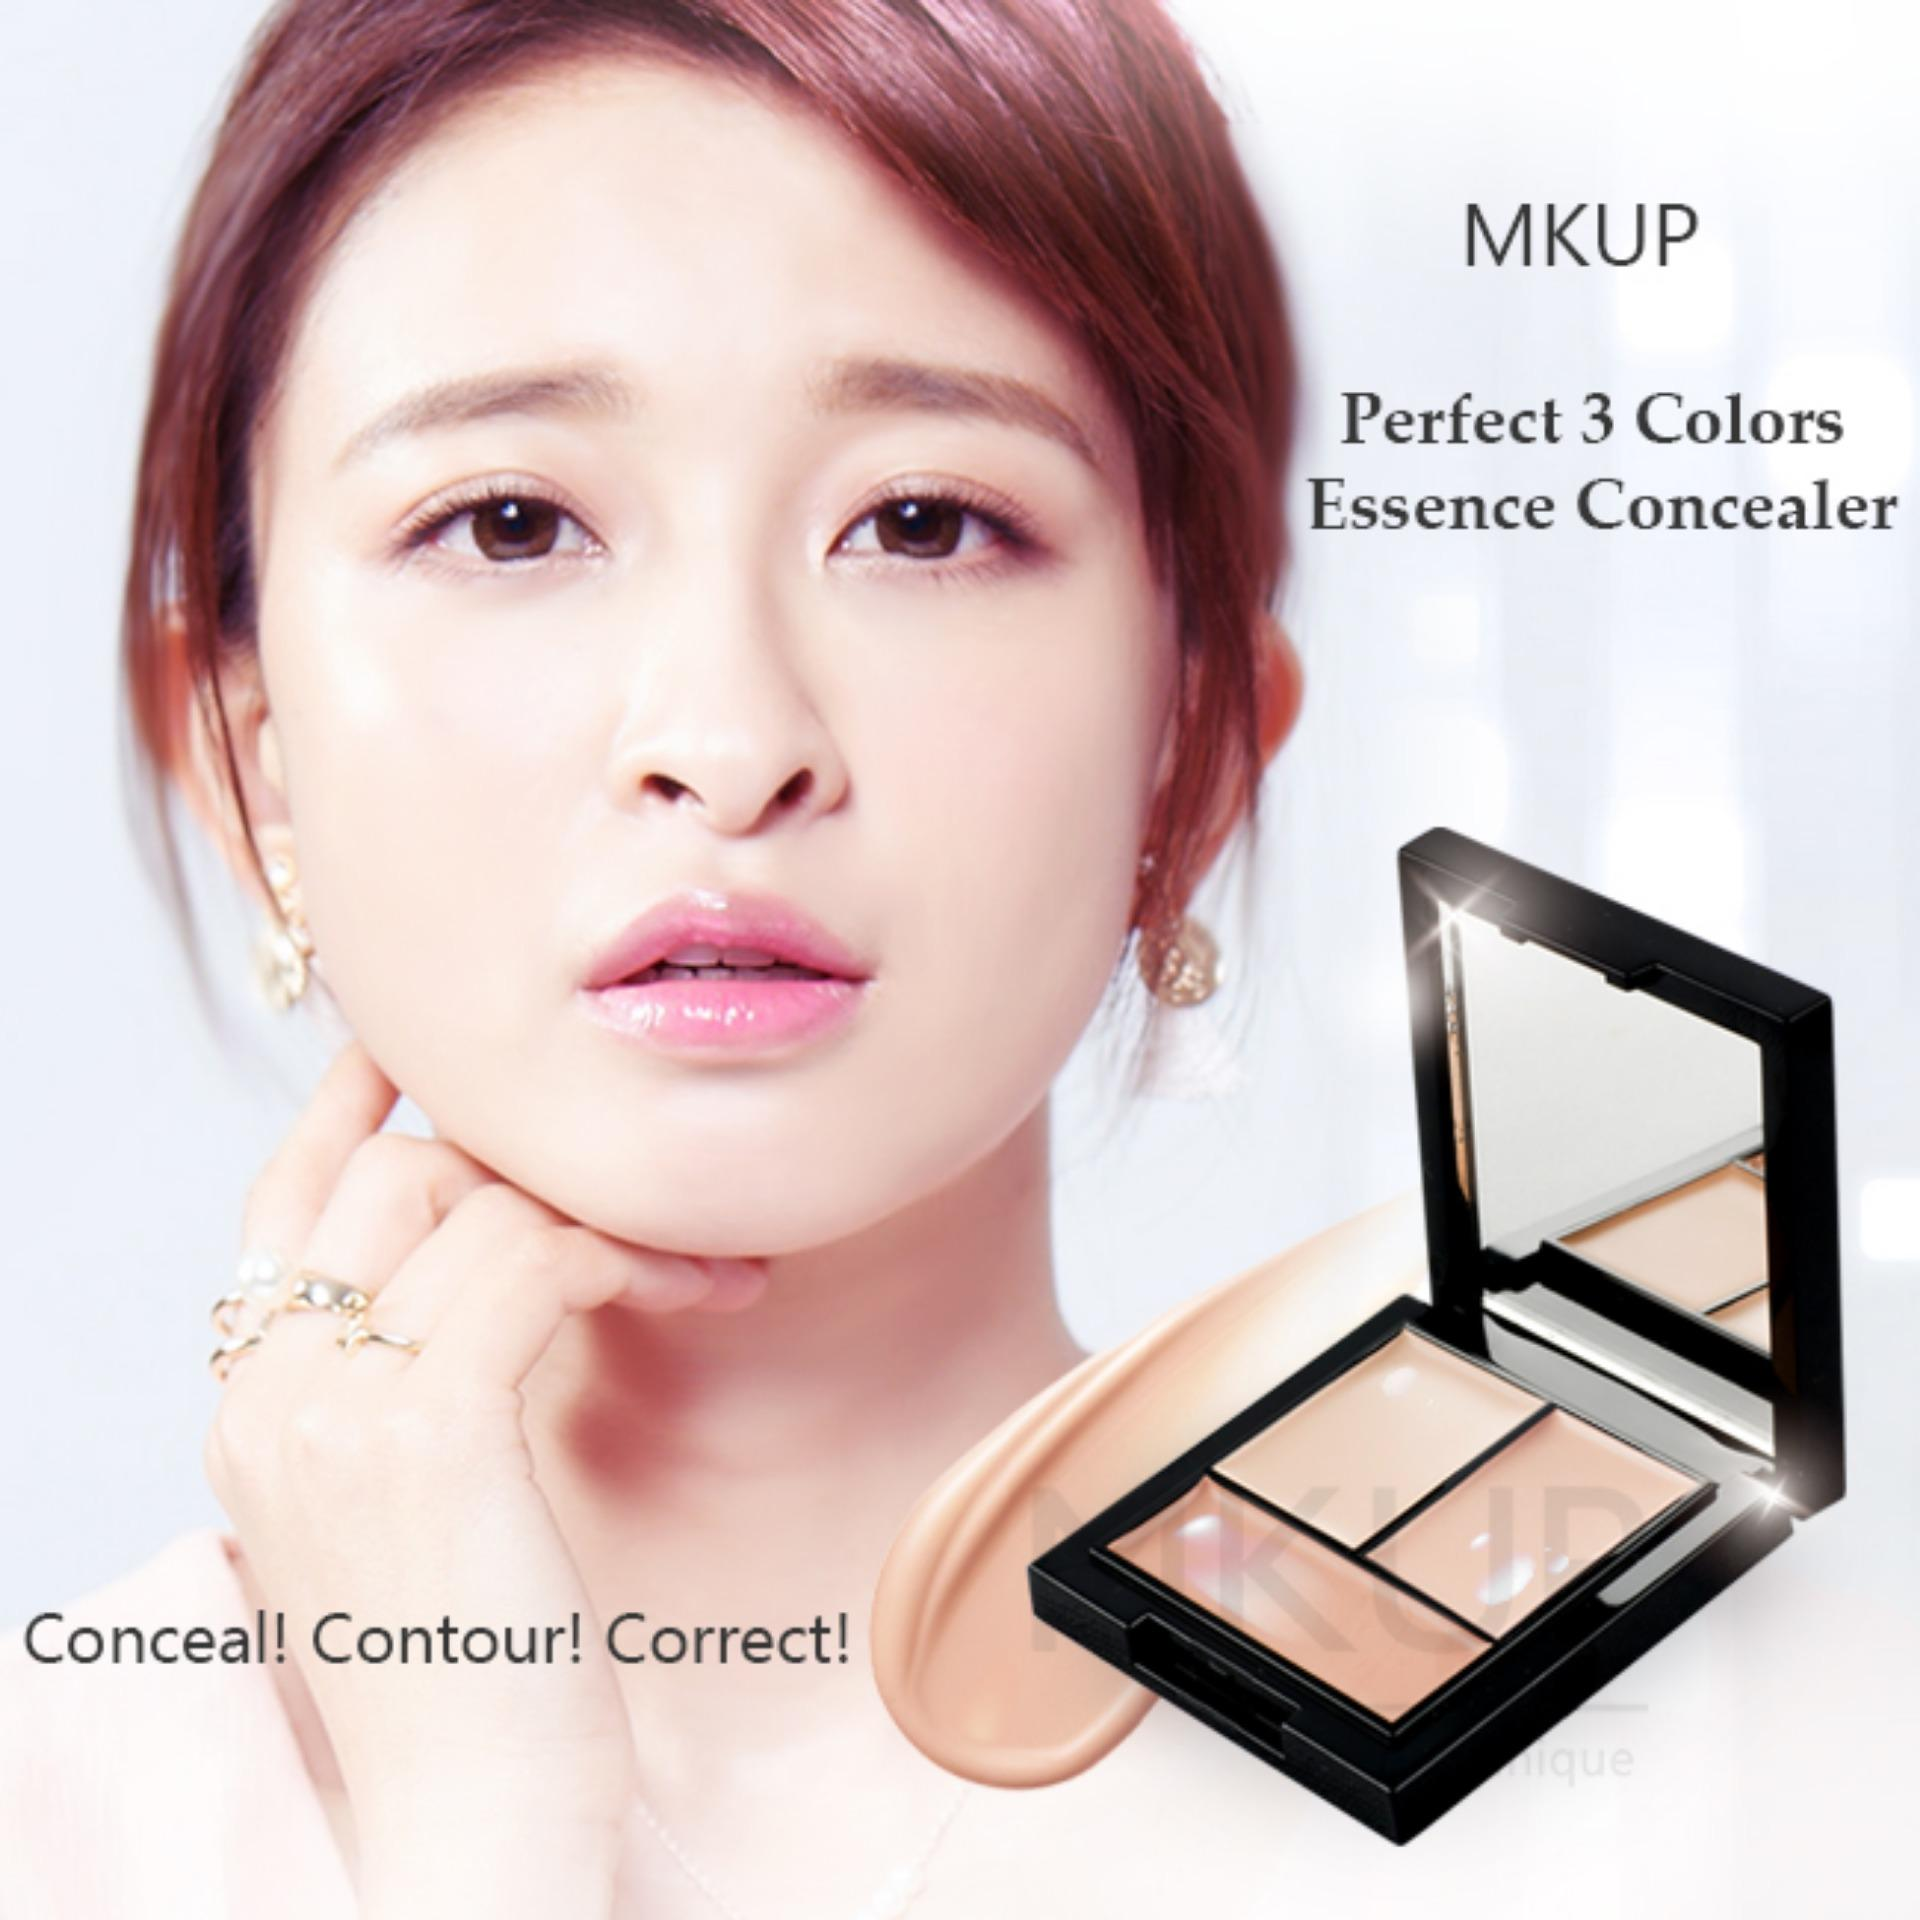 Sale Mkup® Perfect 3 Essence Concealer Mkup On Singapore